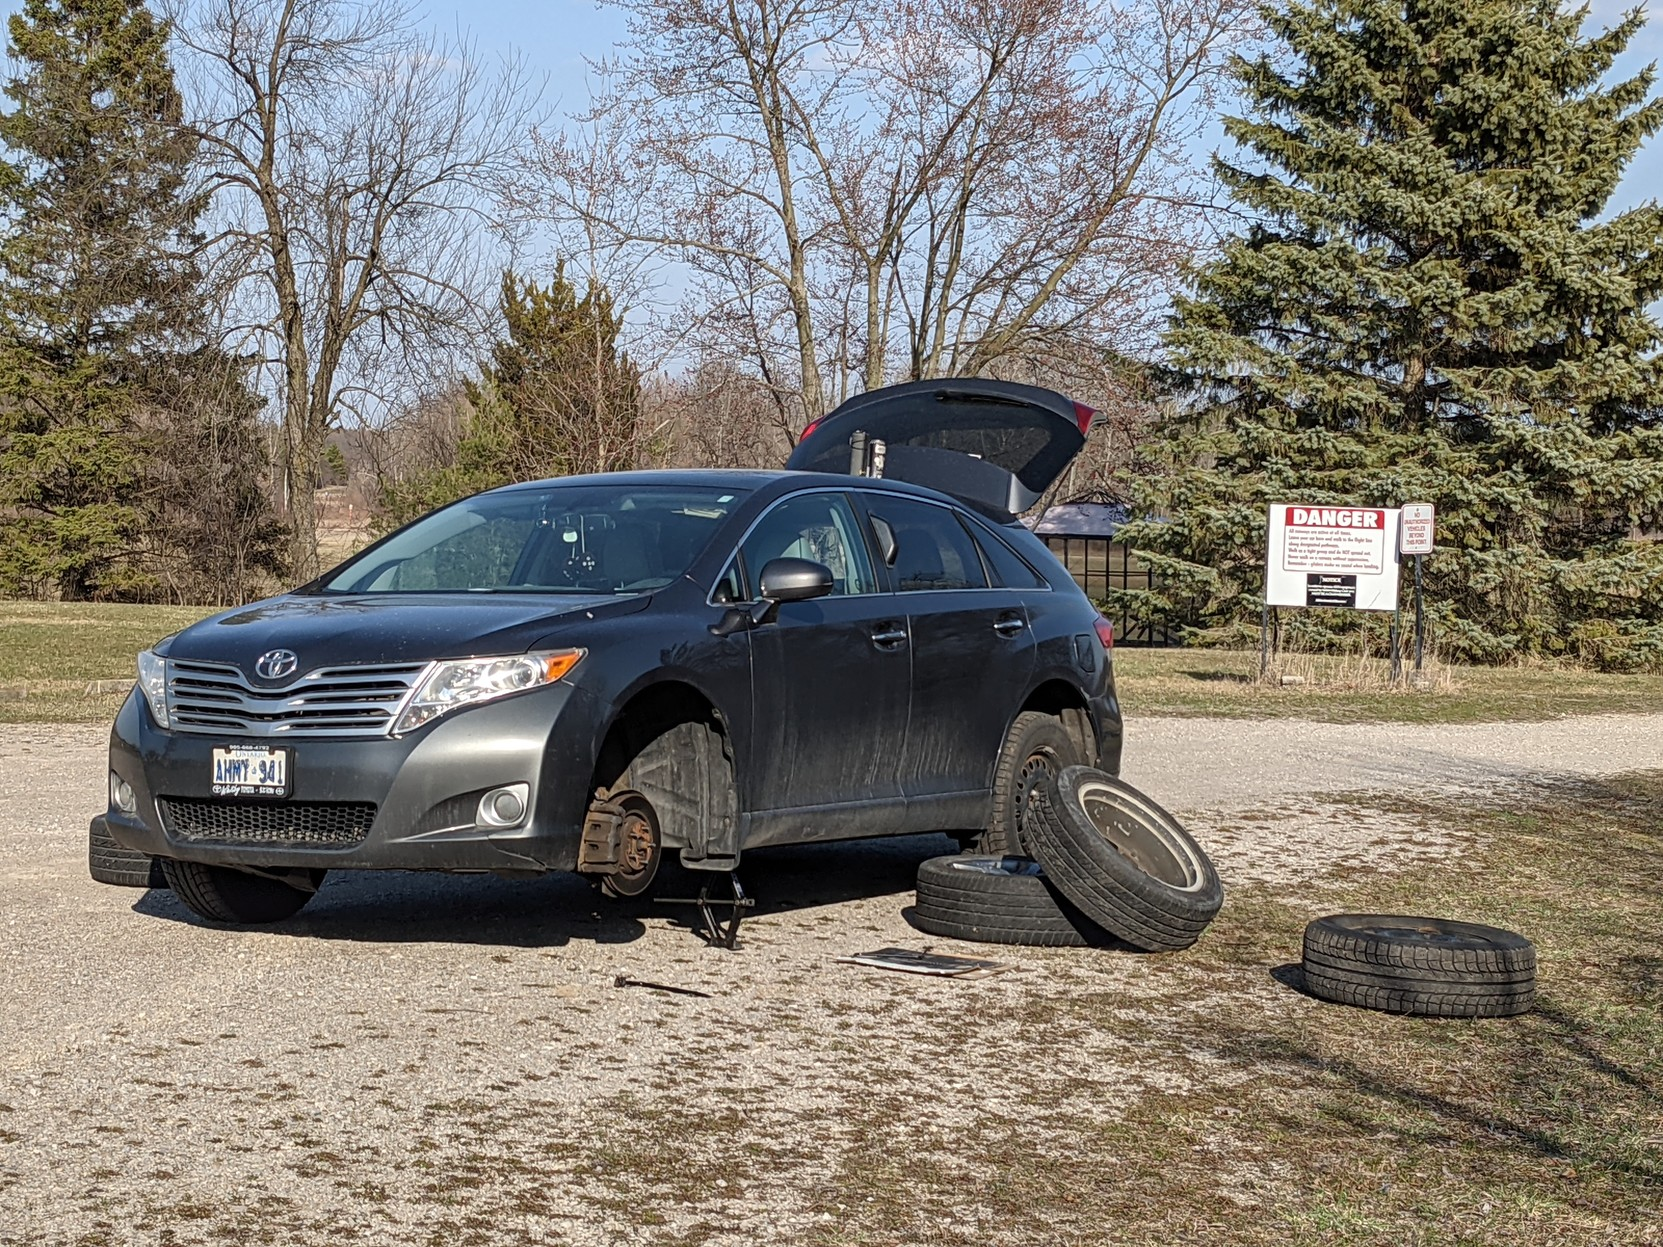 My car, up on a jack, one winter tire removed in anticipation of the summer tire